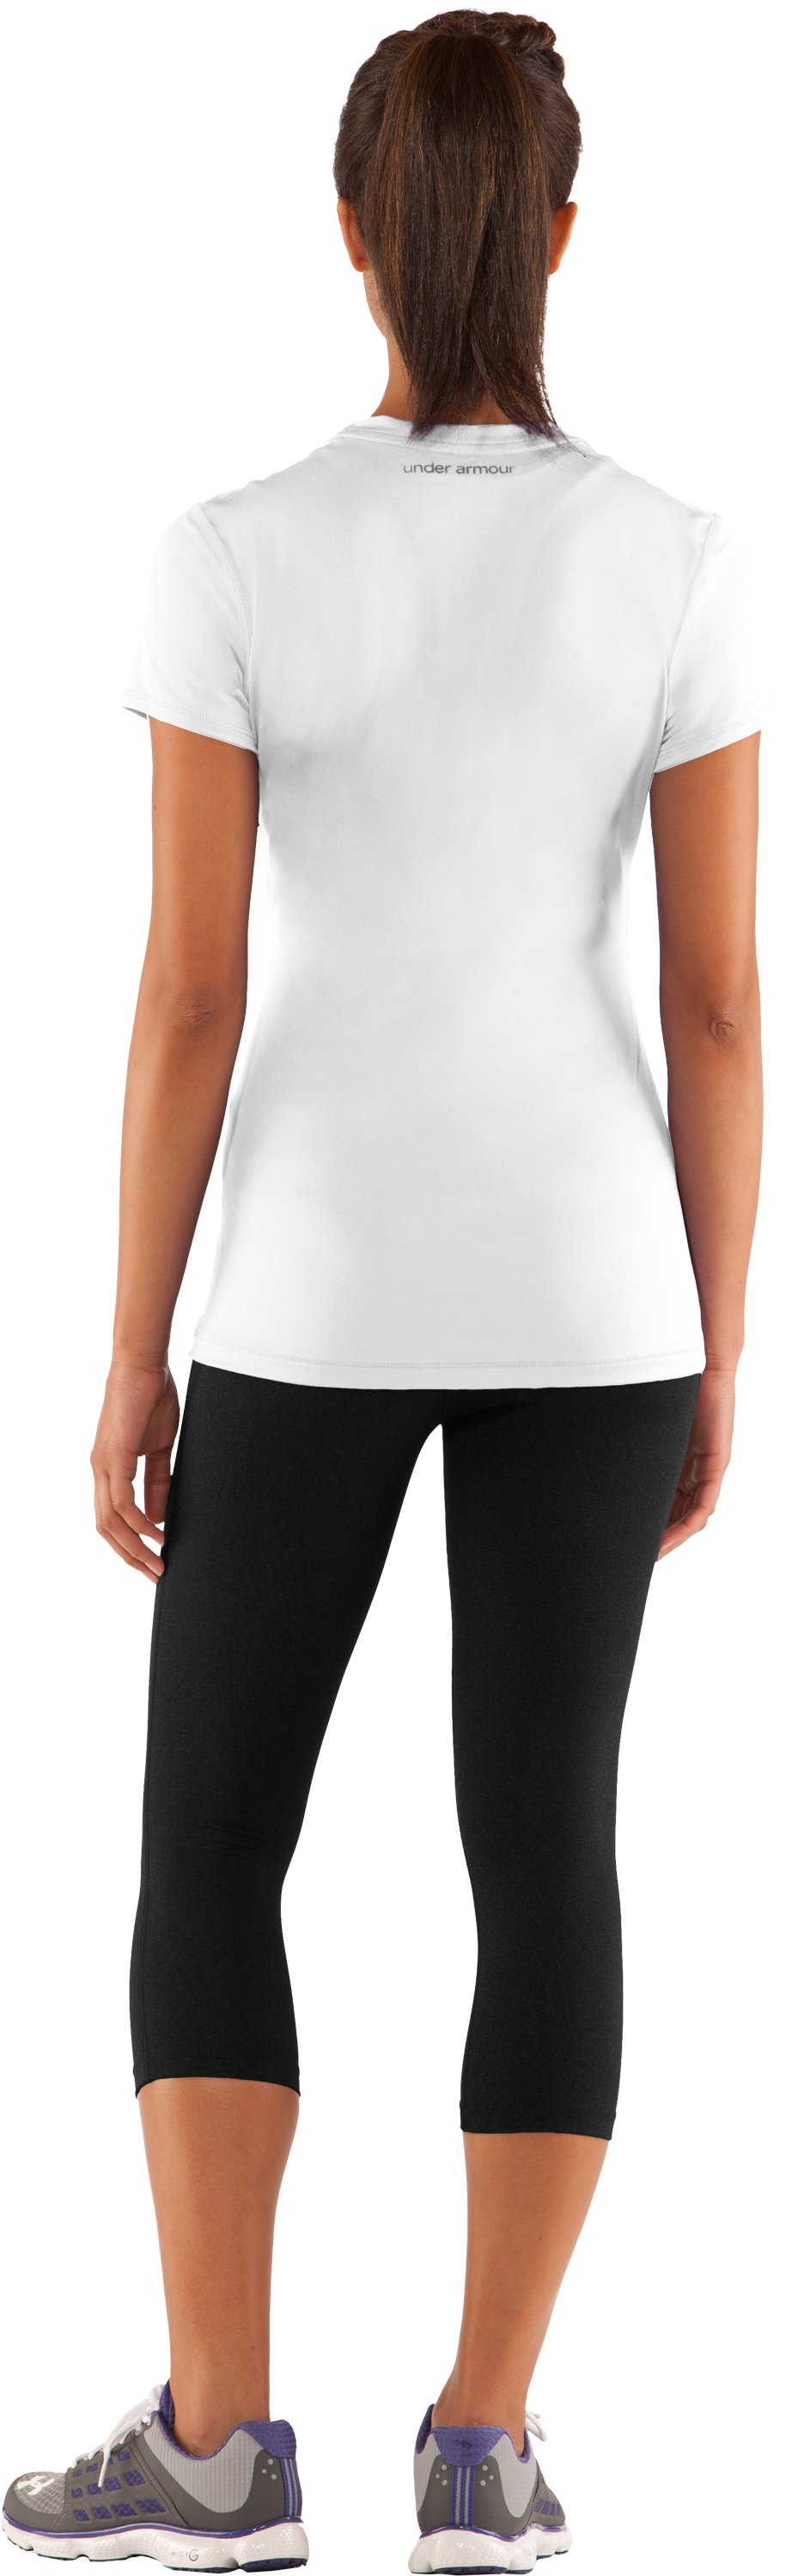 Women's HeatGear® Sonic Short Sleeve, White, Back